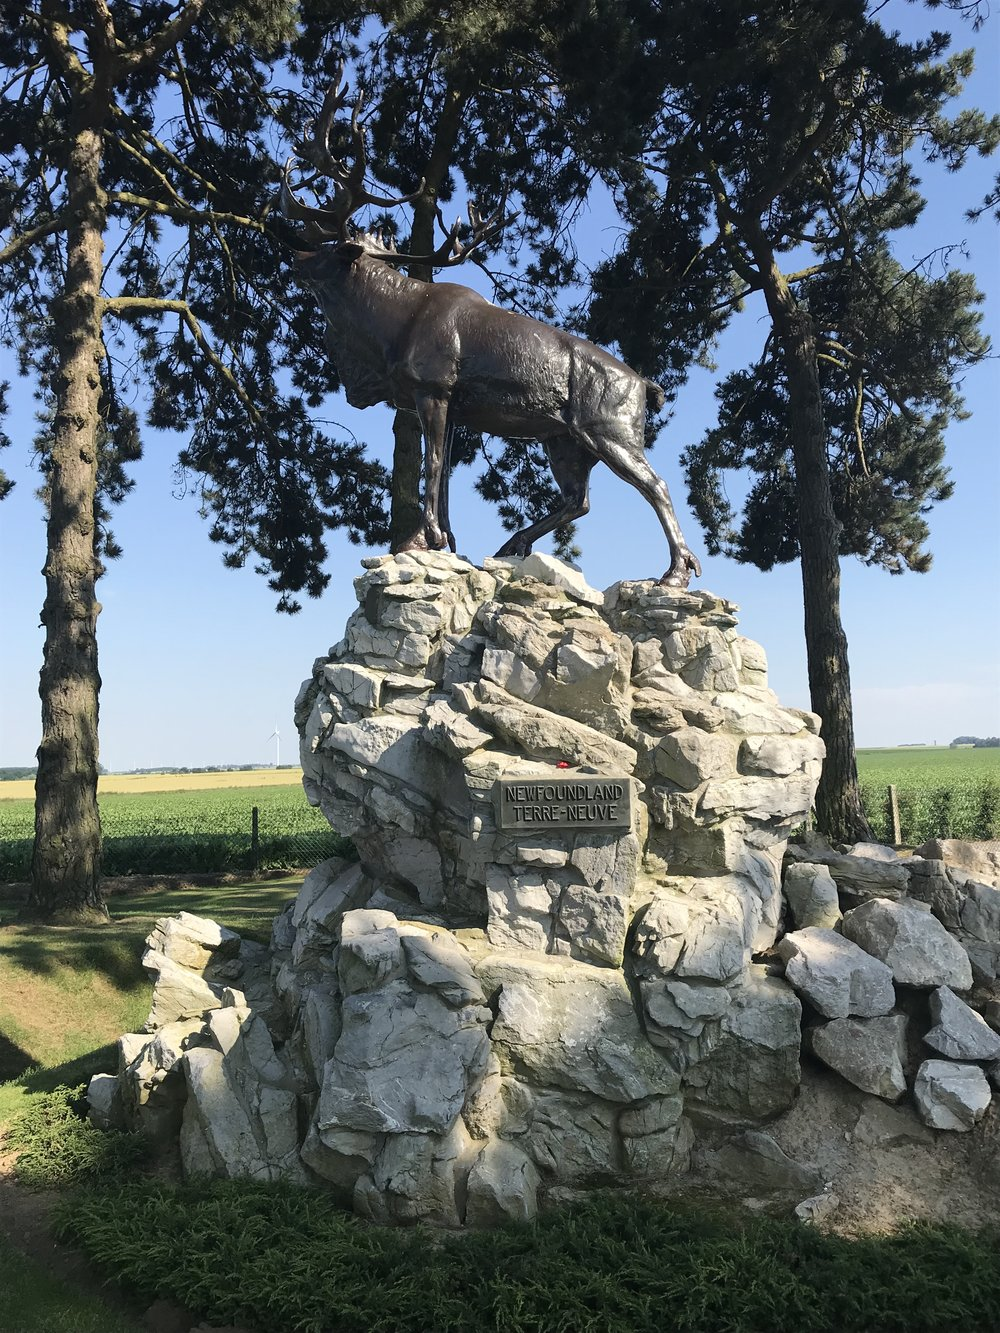 The bronze Caribou monument in Gueudecourt.